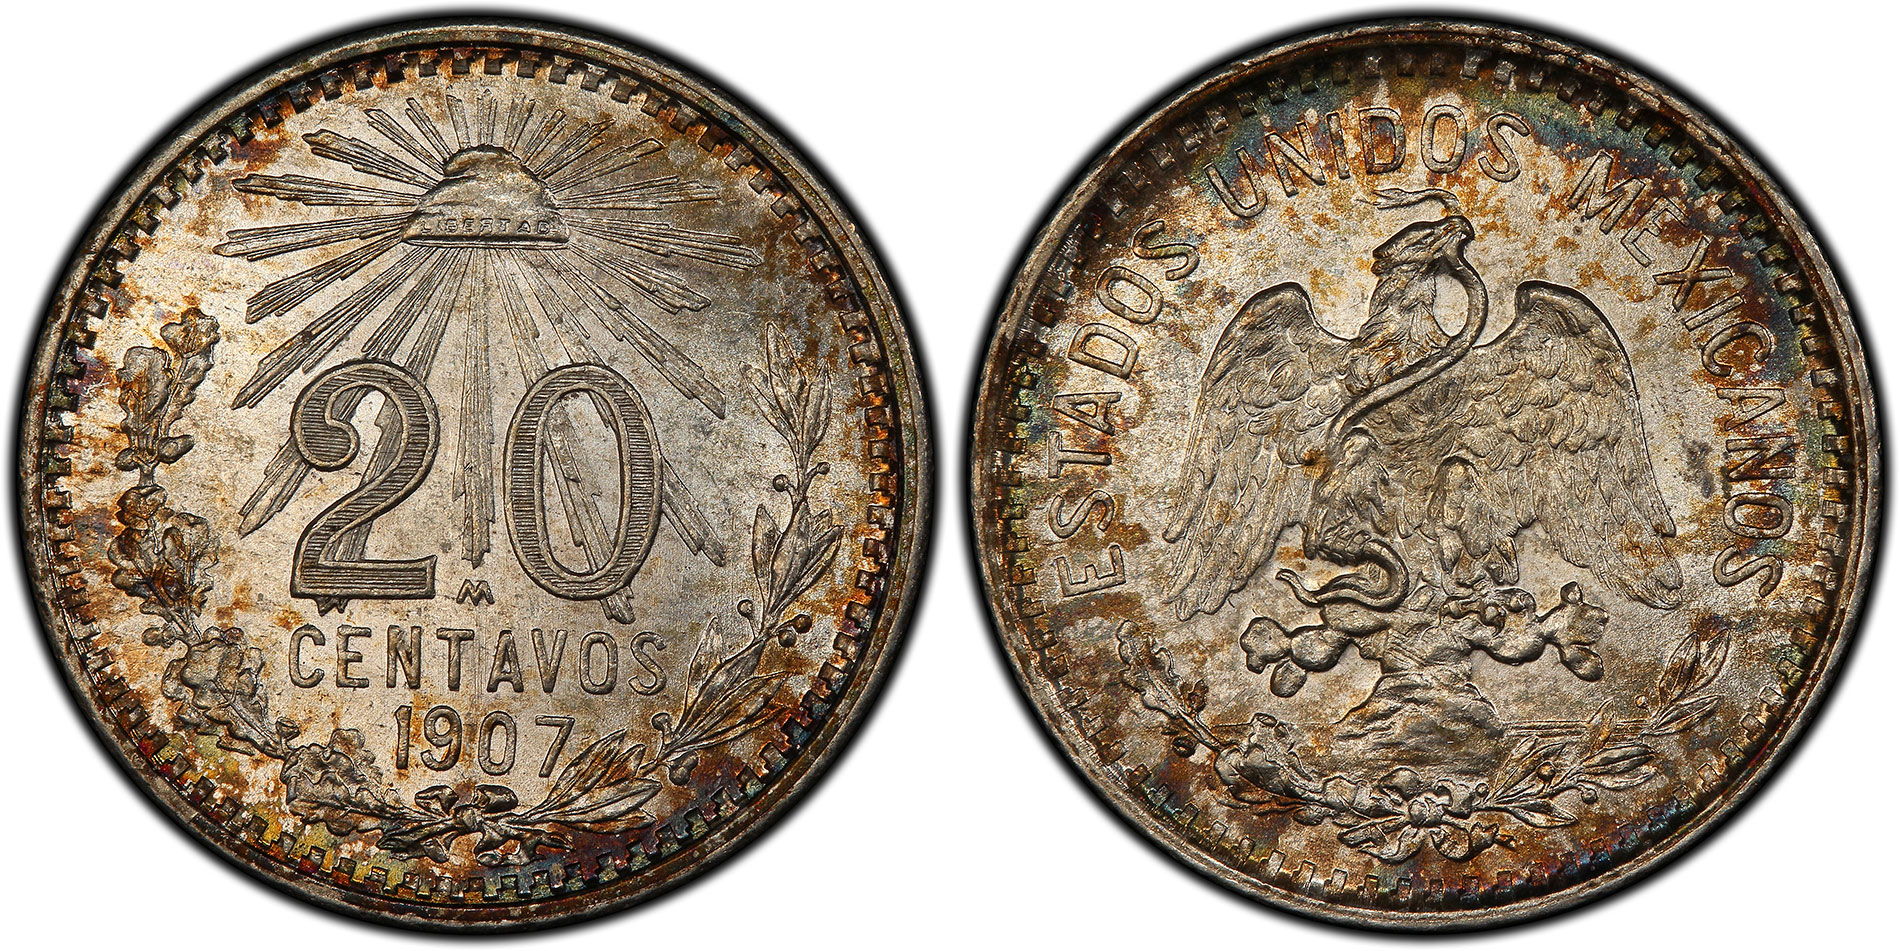 Mexico 1907-M Straight 7 20 Centavos – PCGS MS64. Images courtesy PCGS